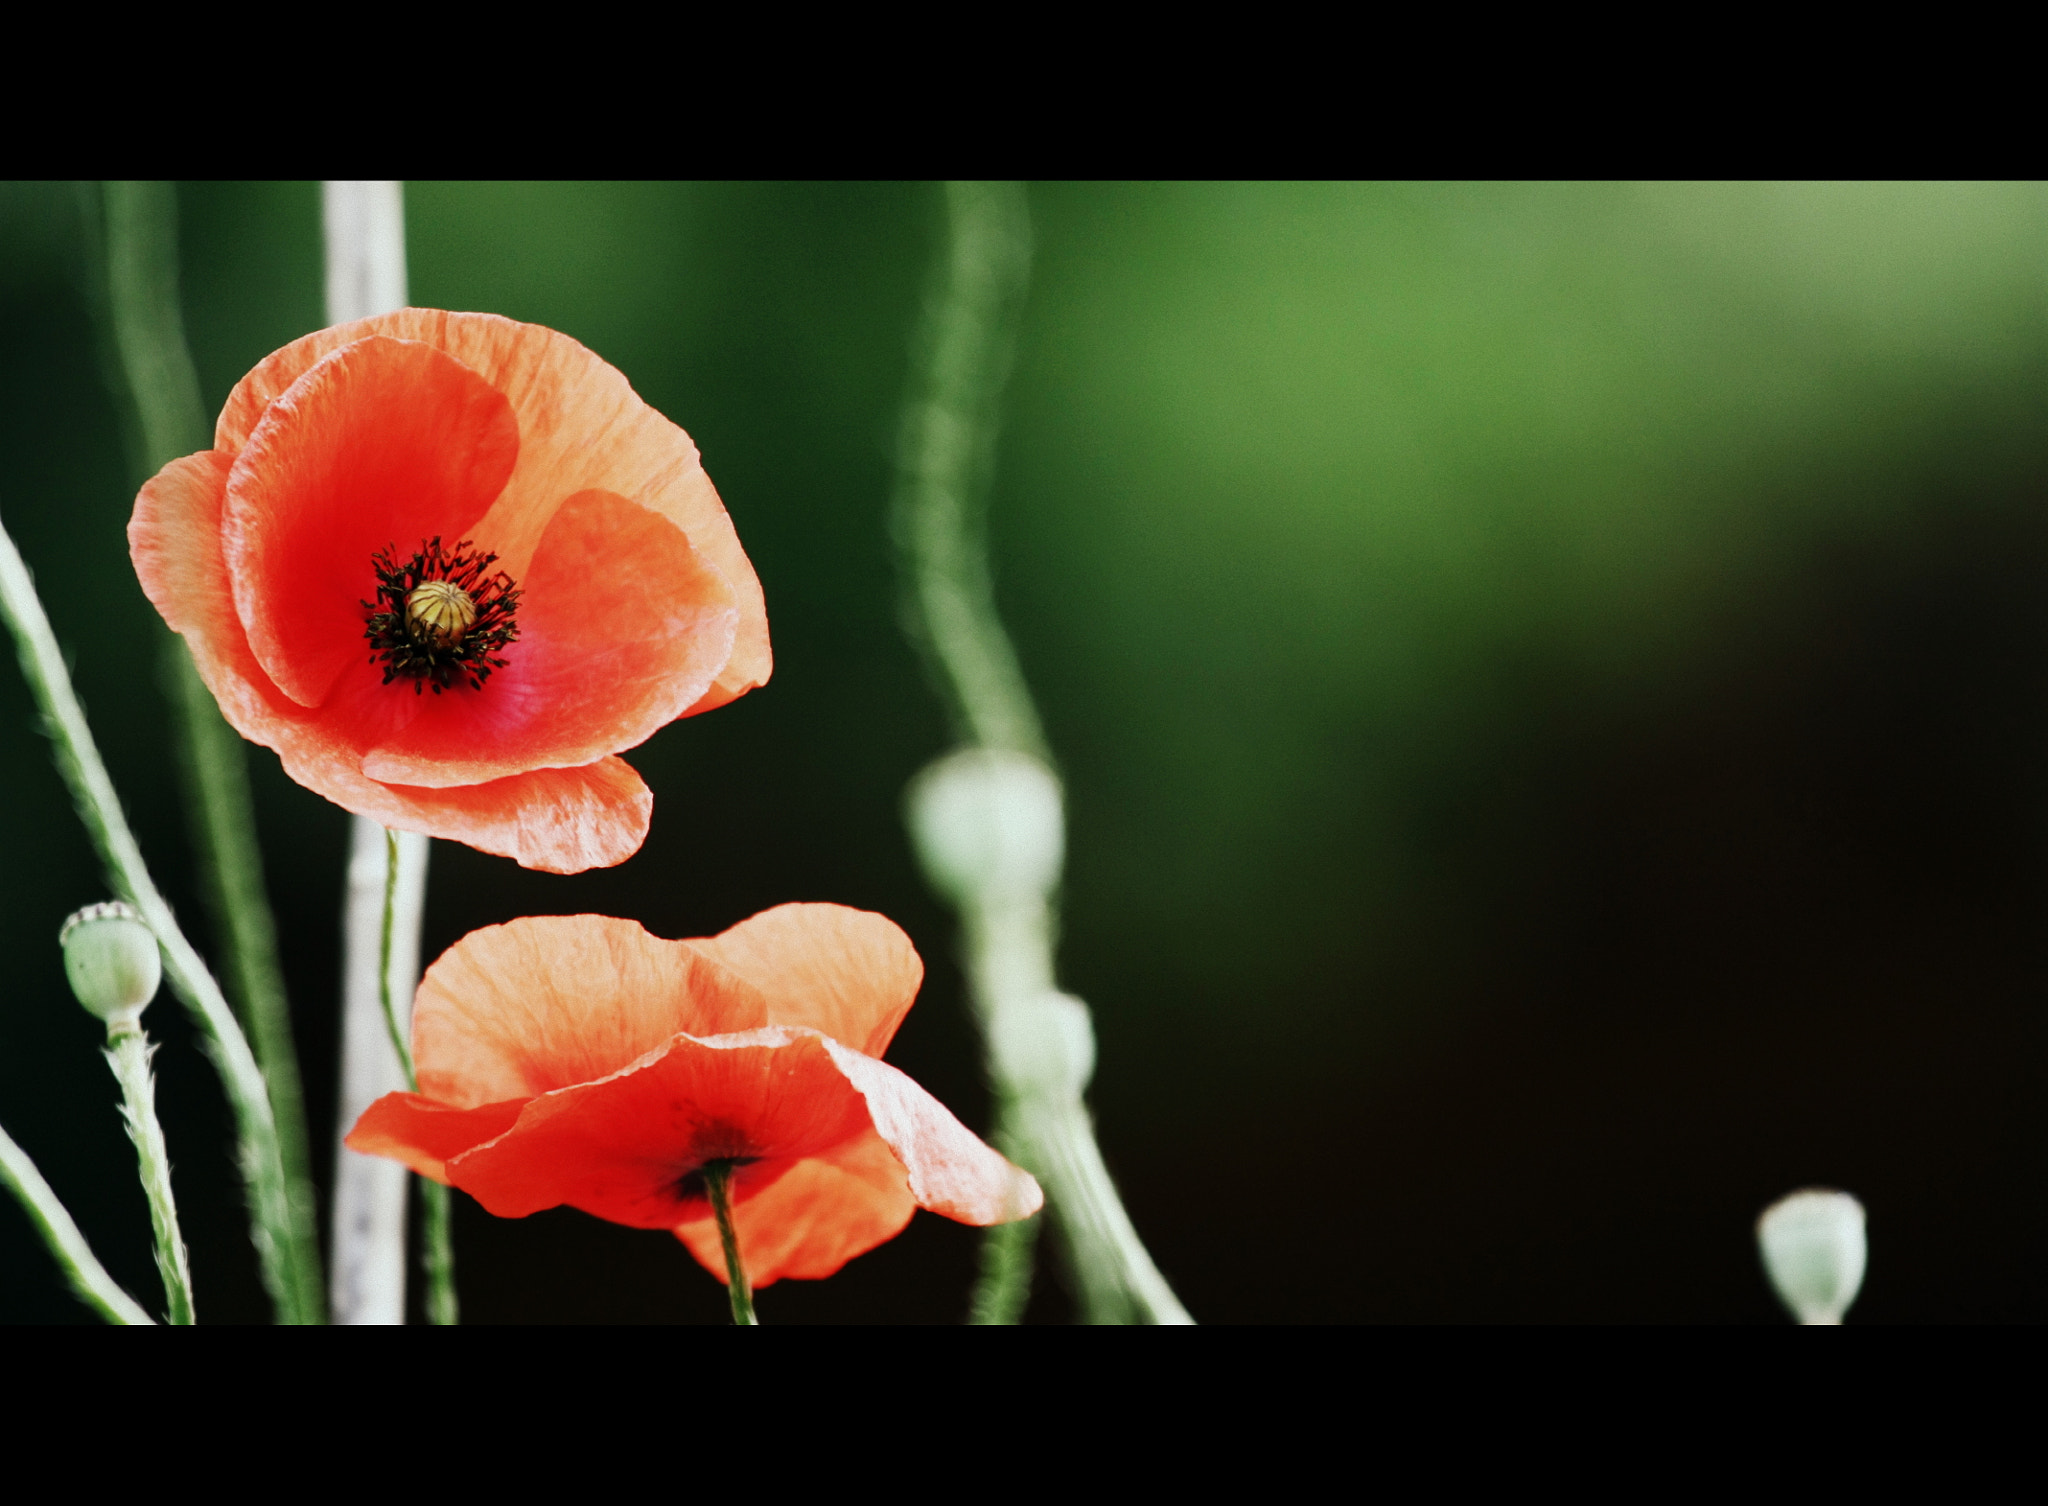 Photograph Poppy by Fruia on 500px